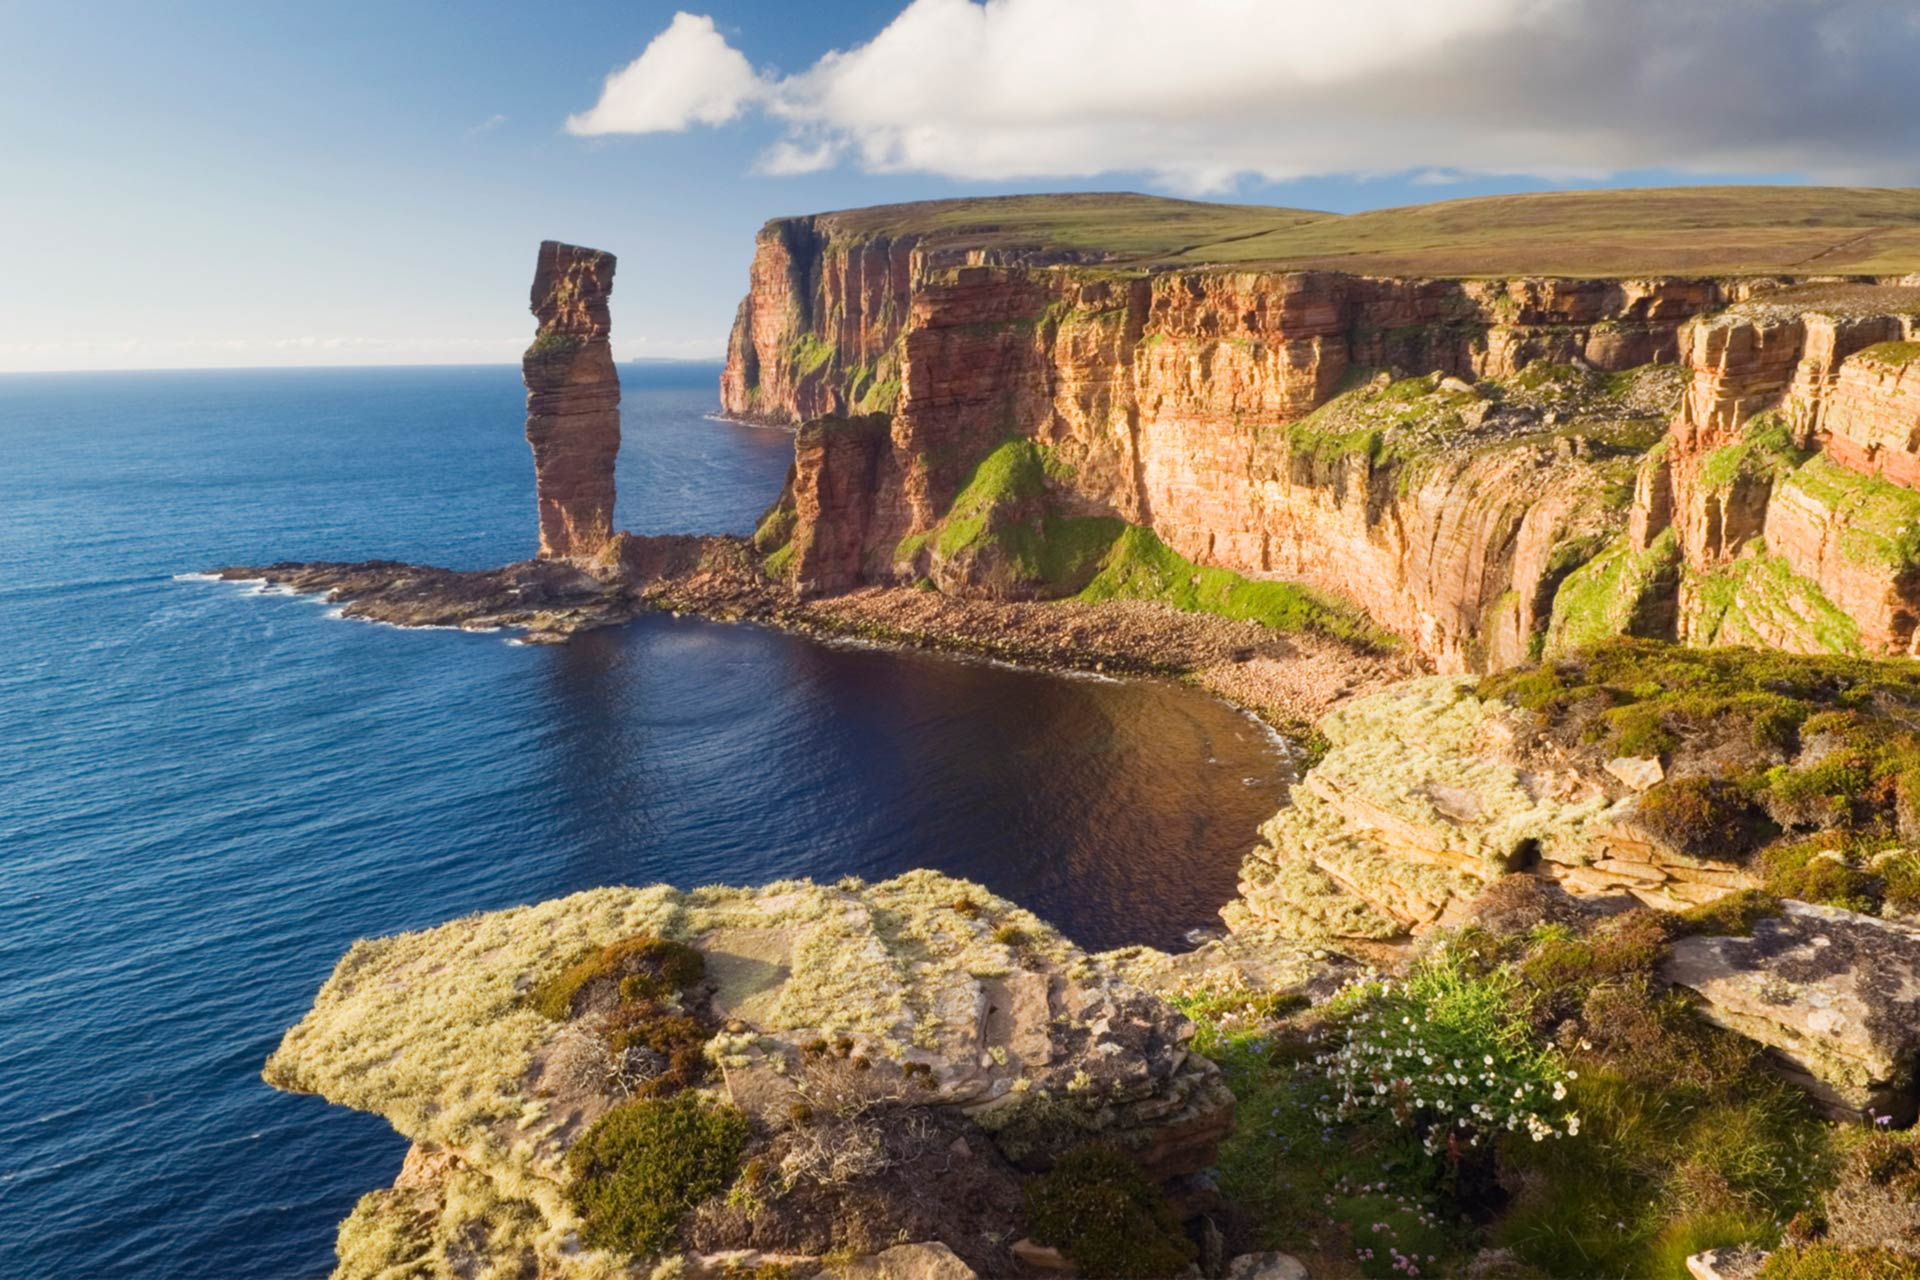 The Old Man of Hoy, Hoy, Orkney © Iain Sarjeant